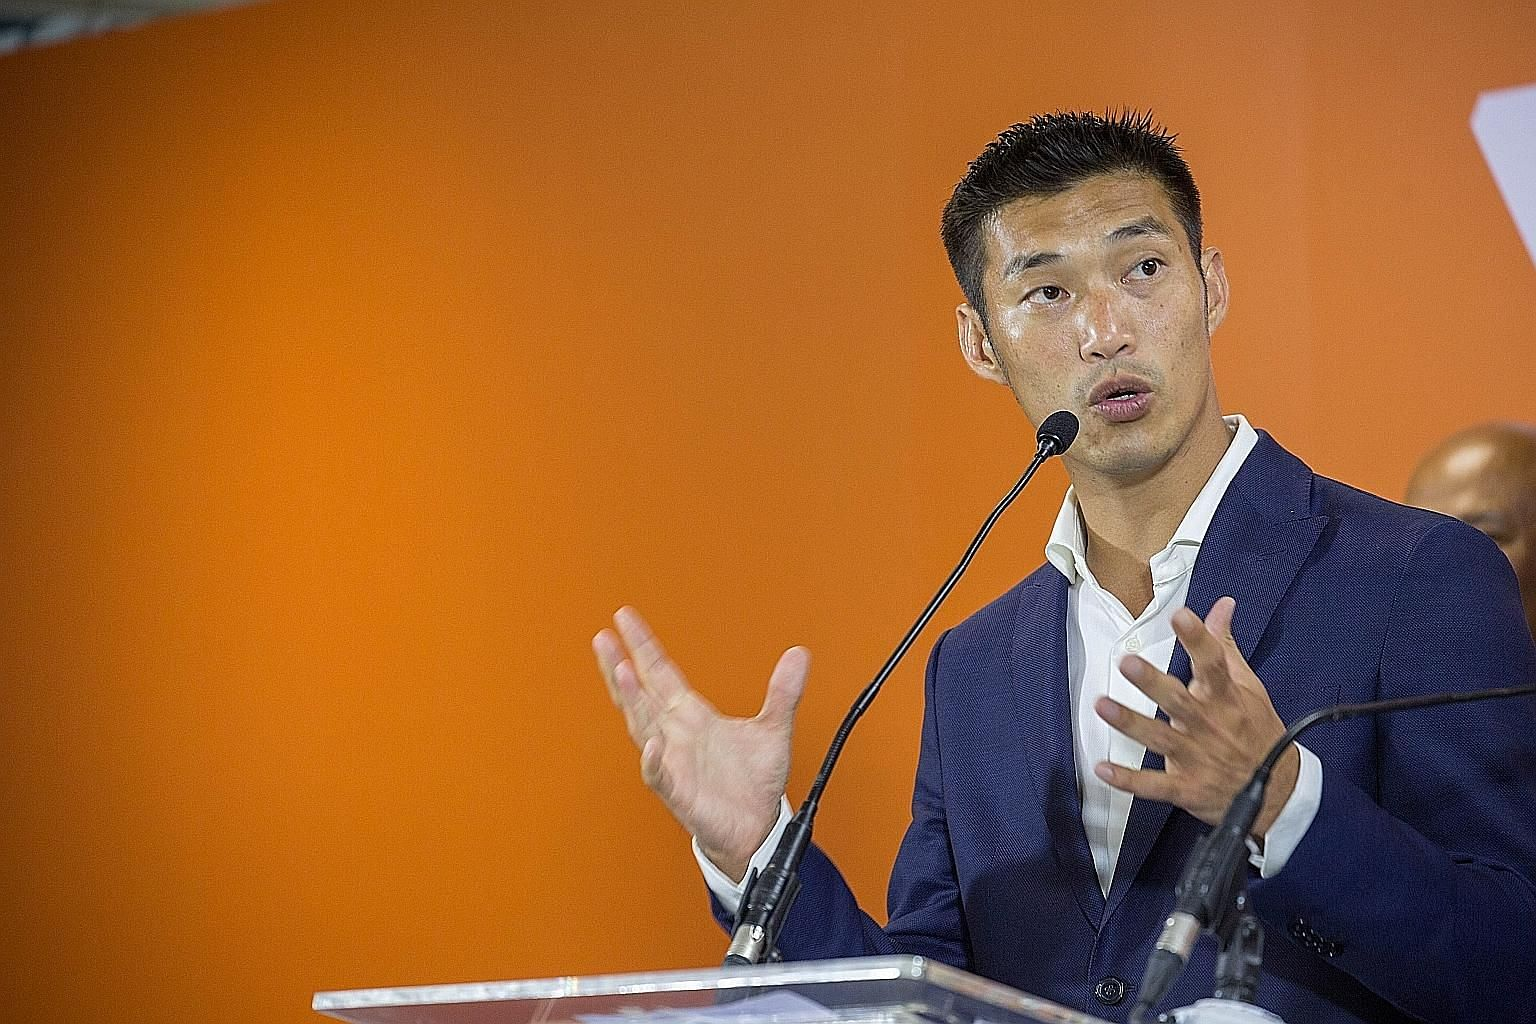 Future Forward Party leader Thanathorn Juangroongruangkit attributes the attacks on his party to its success.